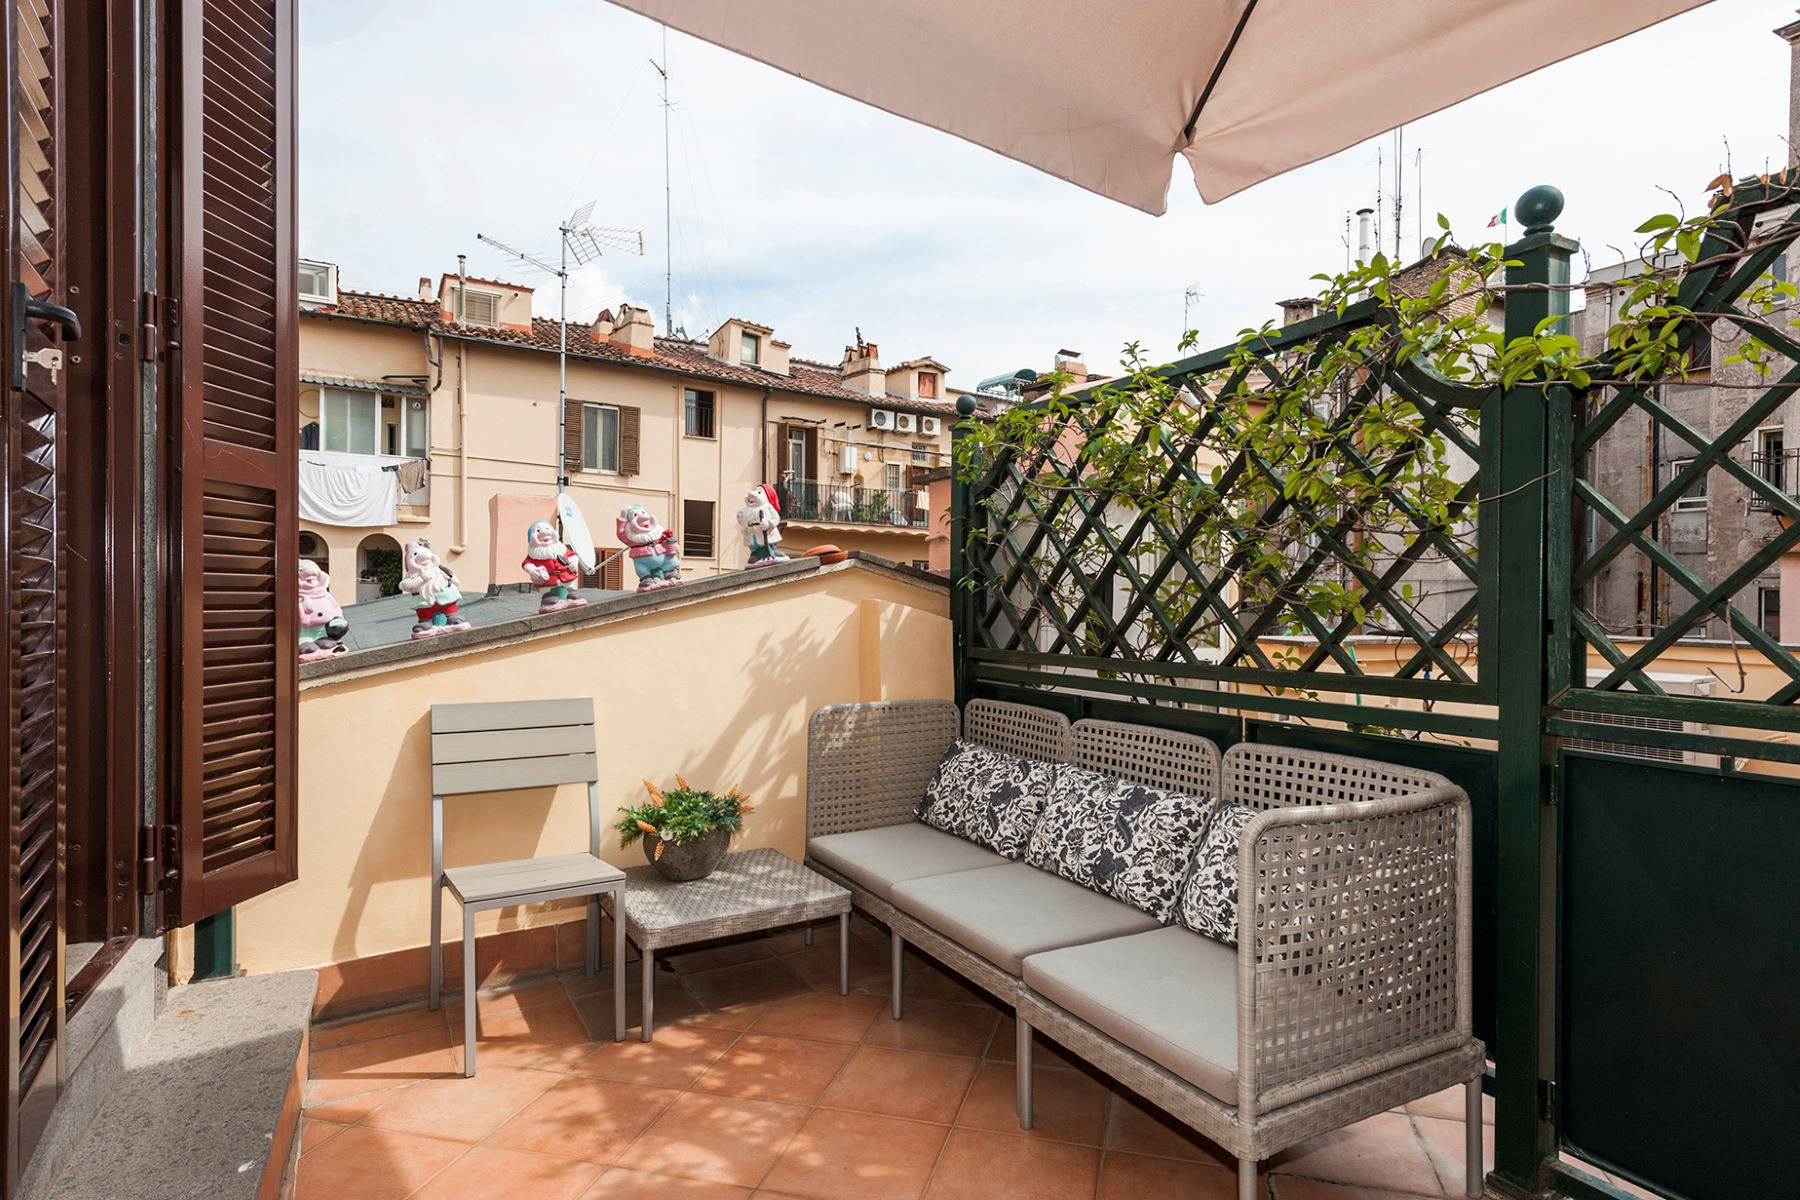 Additional photo for property listing at Quiet apartment with terrace close to the Trevi Fountain Vicolo Scavolino Rome, Roma 00187 Italia